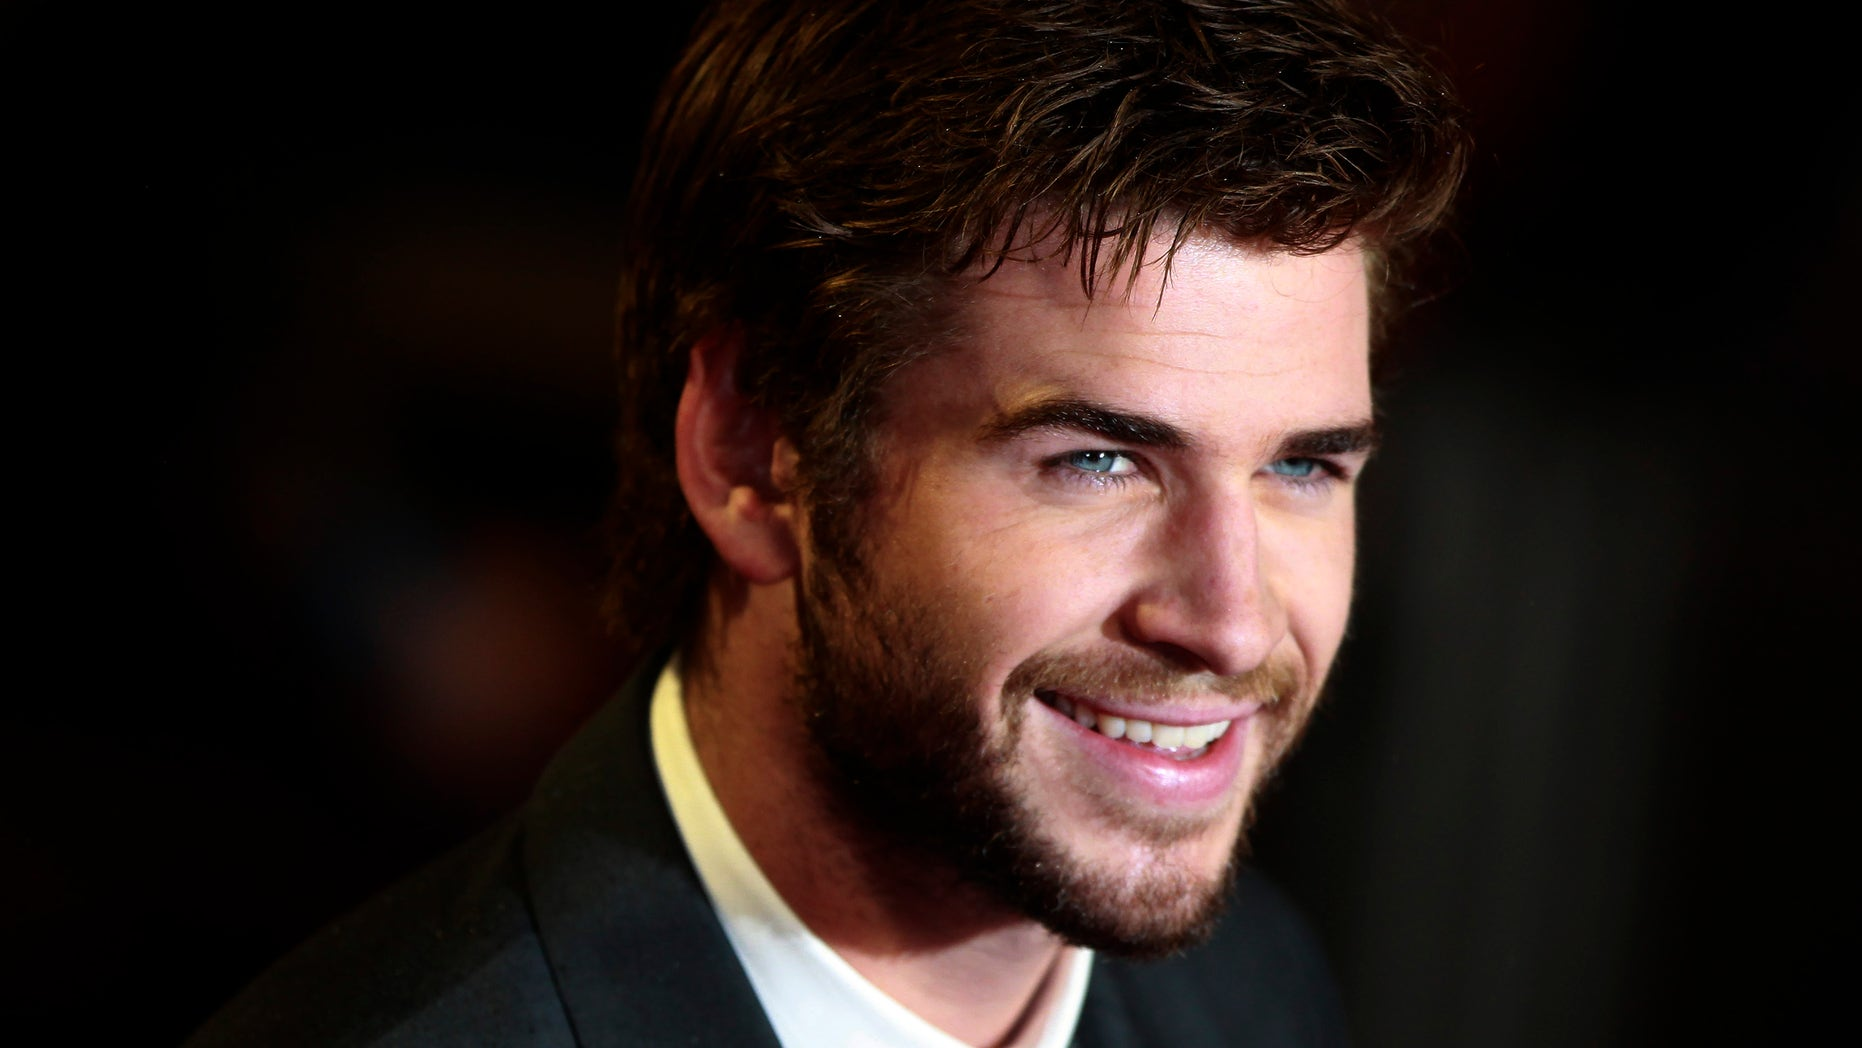 """Actor Liam Hemsworth arrives for the world premiere of """"The Hunger Games : Catching Fire"""" at Leicester Square in London November 11, 2013. REUTERS/Luke MacGregor (BRITAIN - Tags: ENTERTAINMENT SOCIETY) - RTX159PF"""